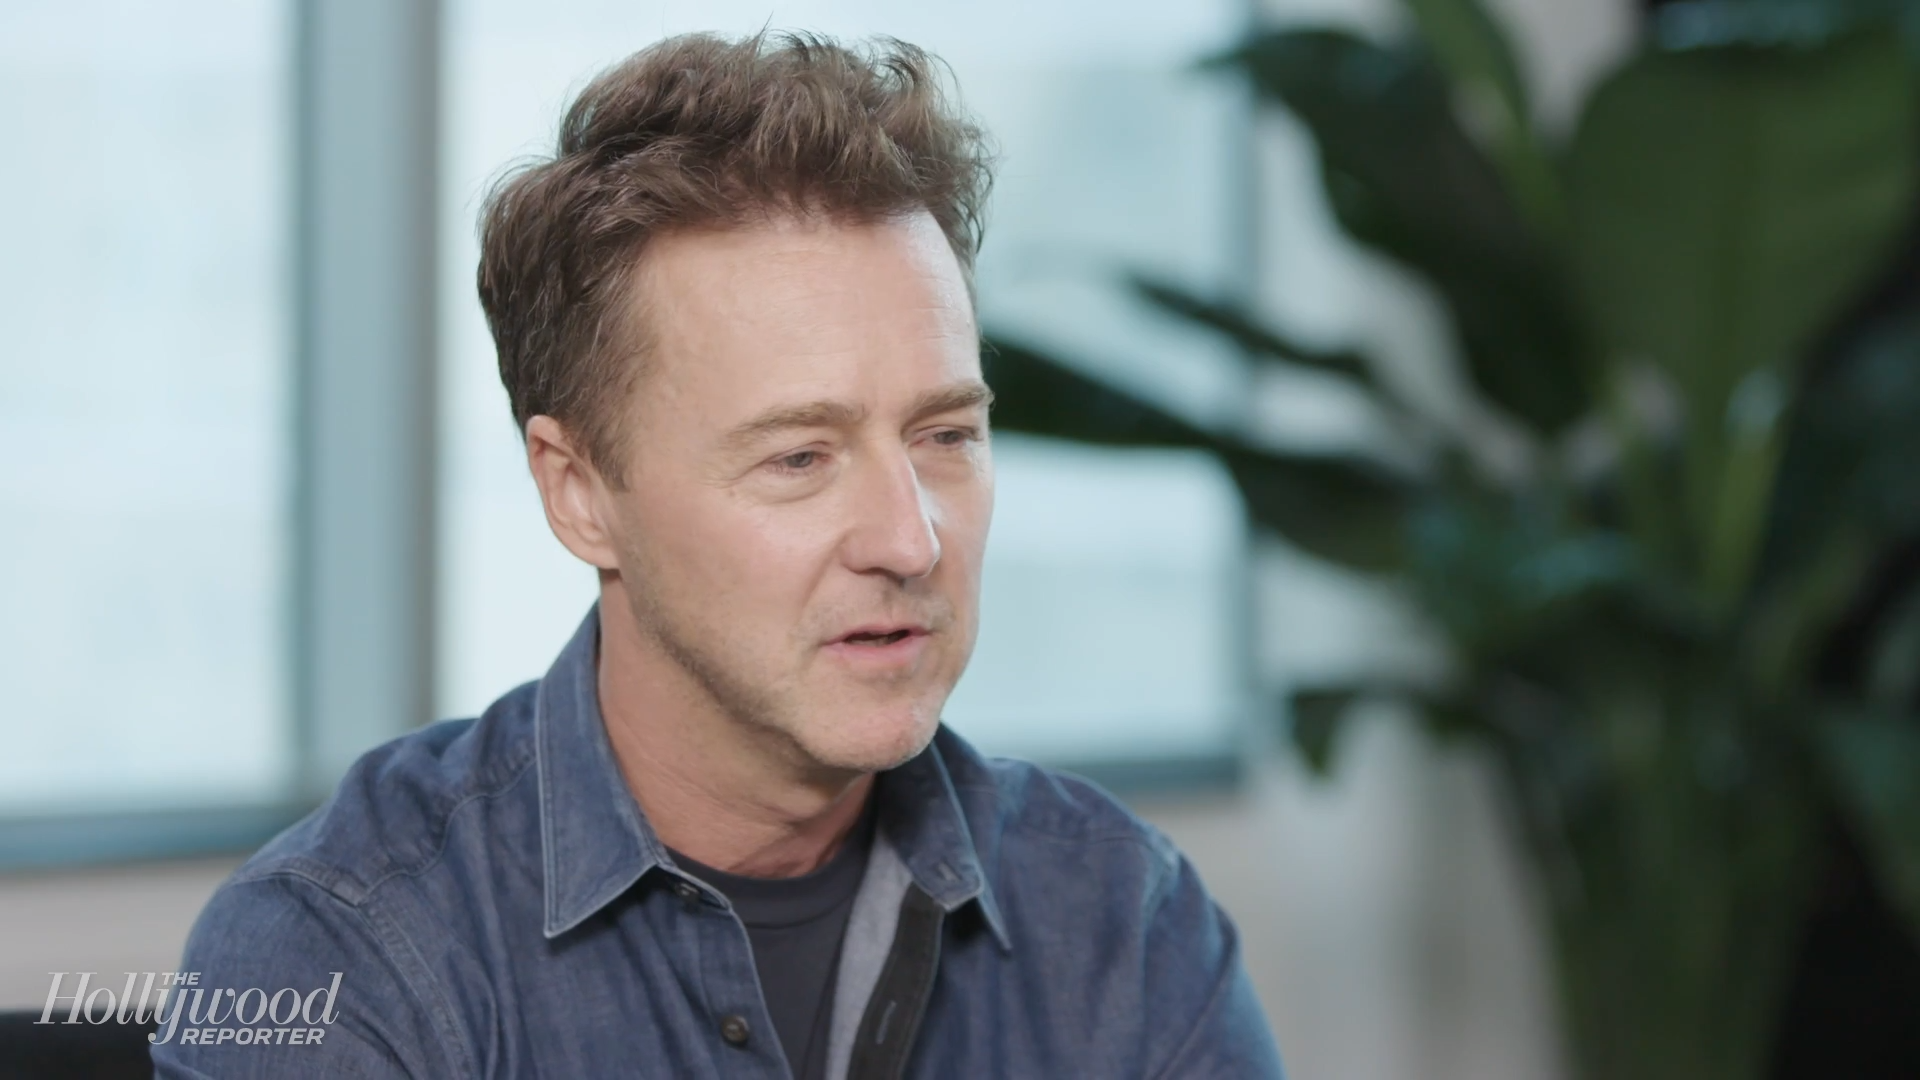 Edward Norton, Willem Dafoe Discuss Norton's Directorial Debut 'Motherless Brooklyn' | TIFF 2019